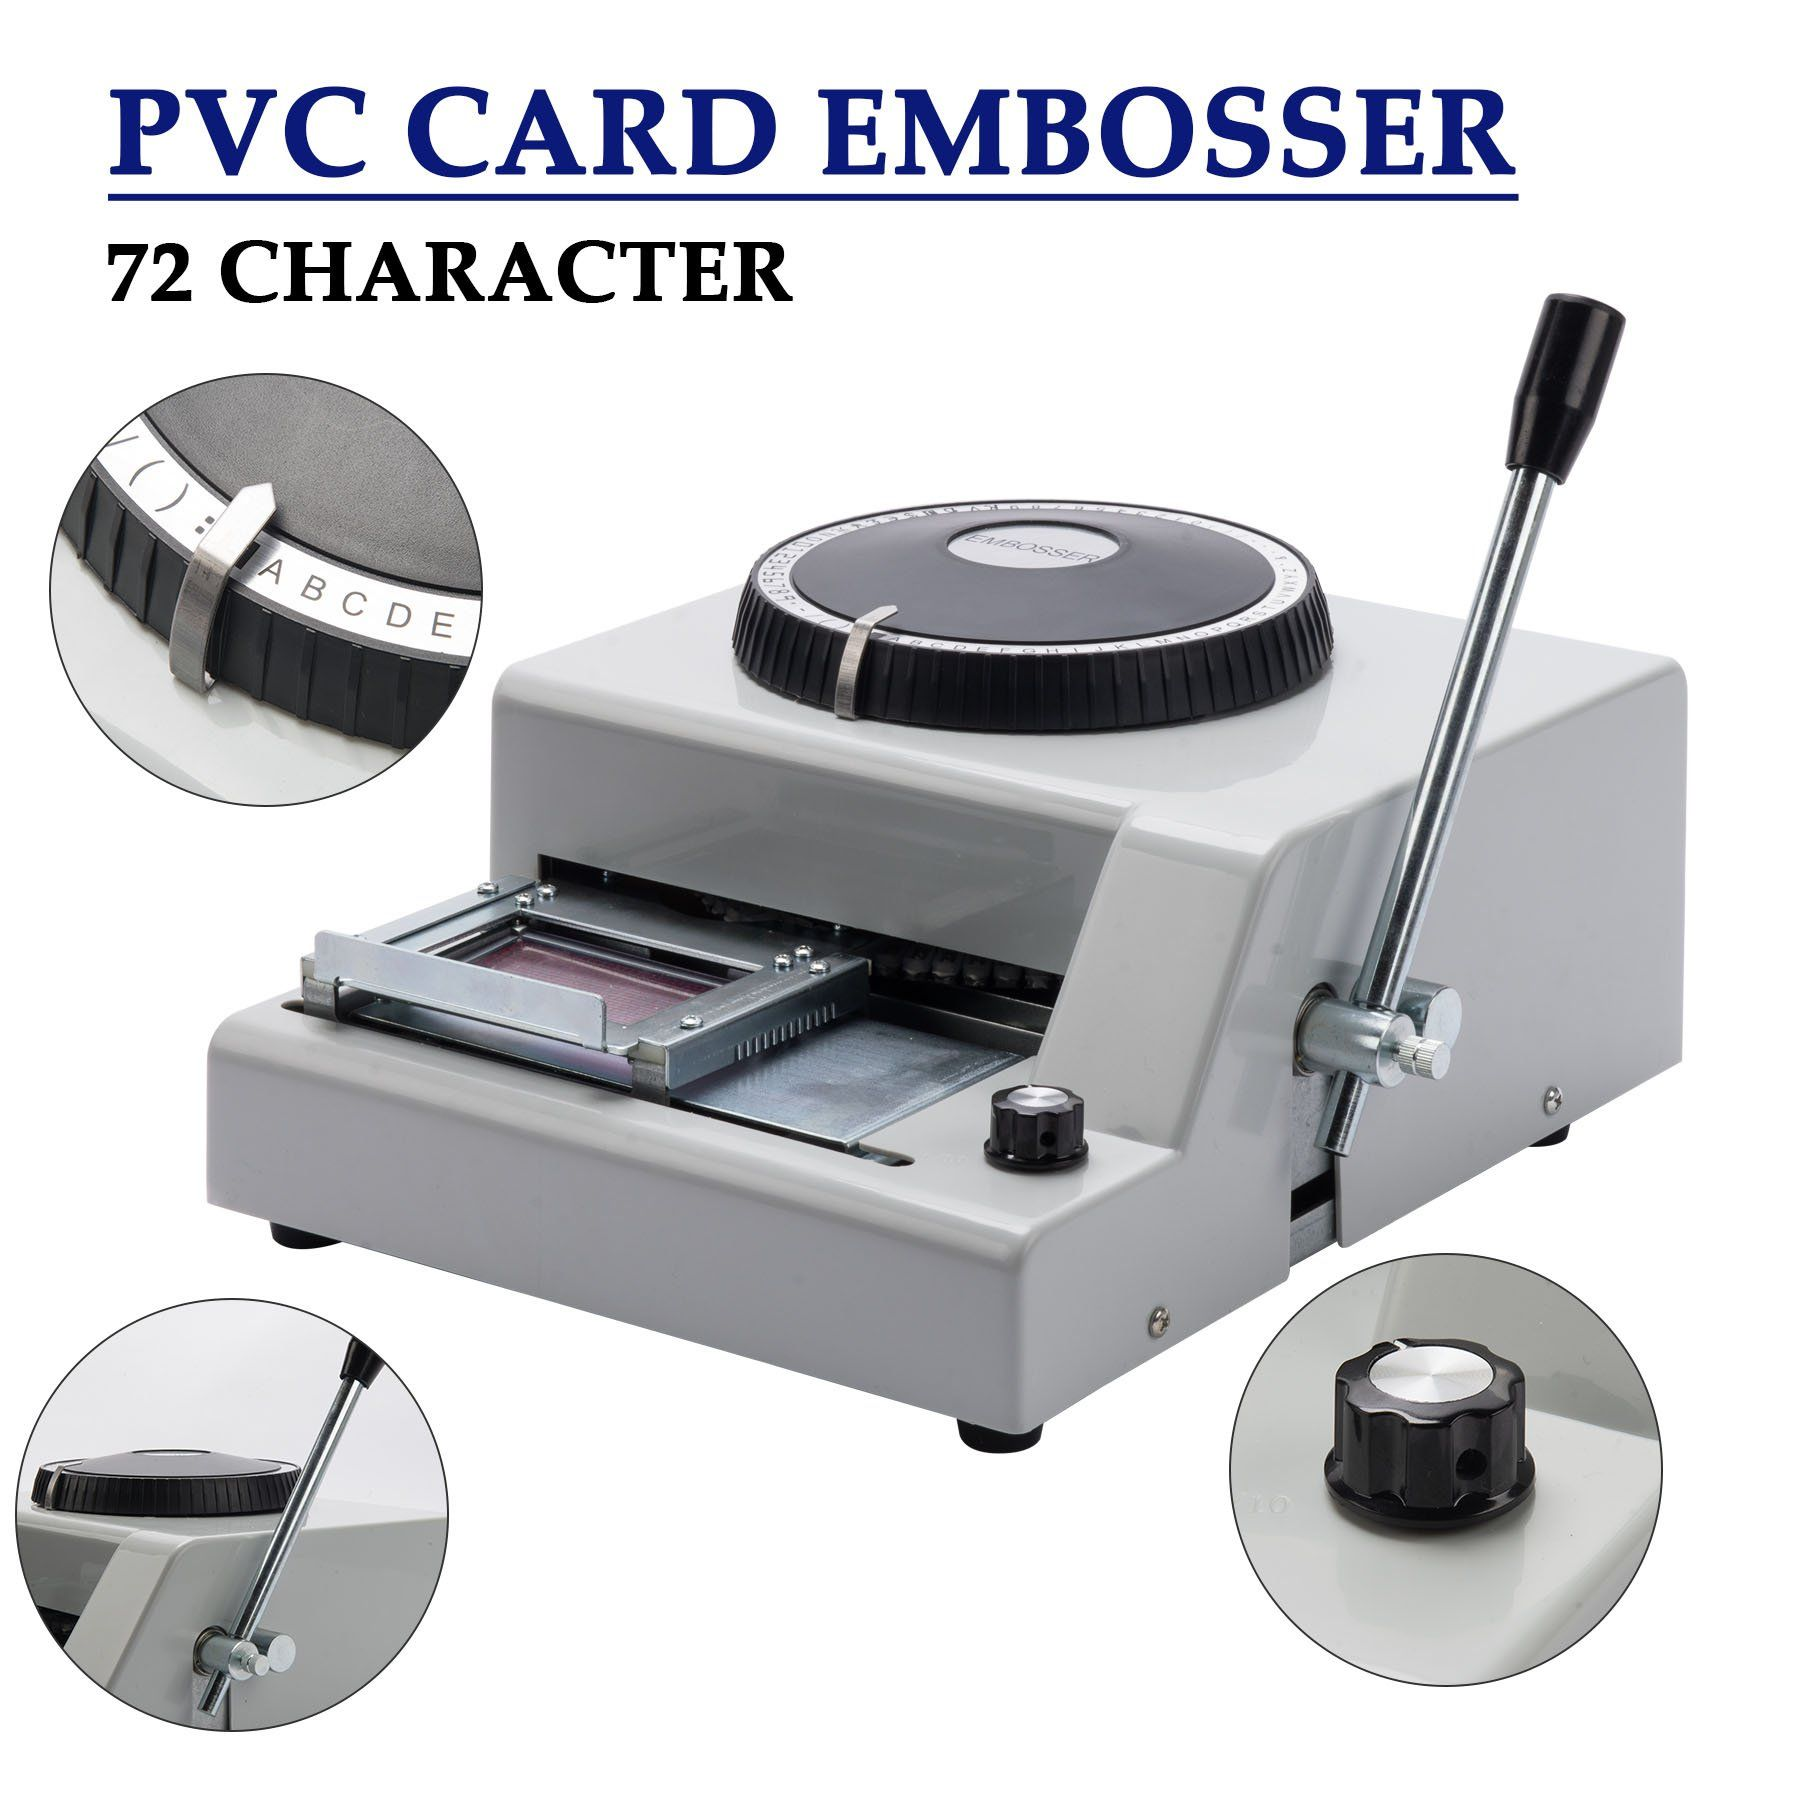 CO-Z 72-Character PVC Card Embosser Stamping Machine Credit ID VIP Magnetic Stamping Embossing